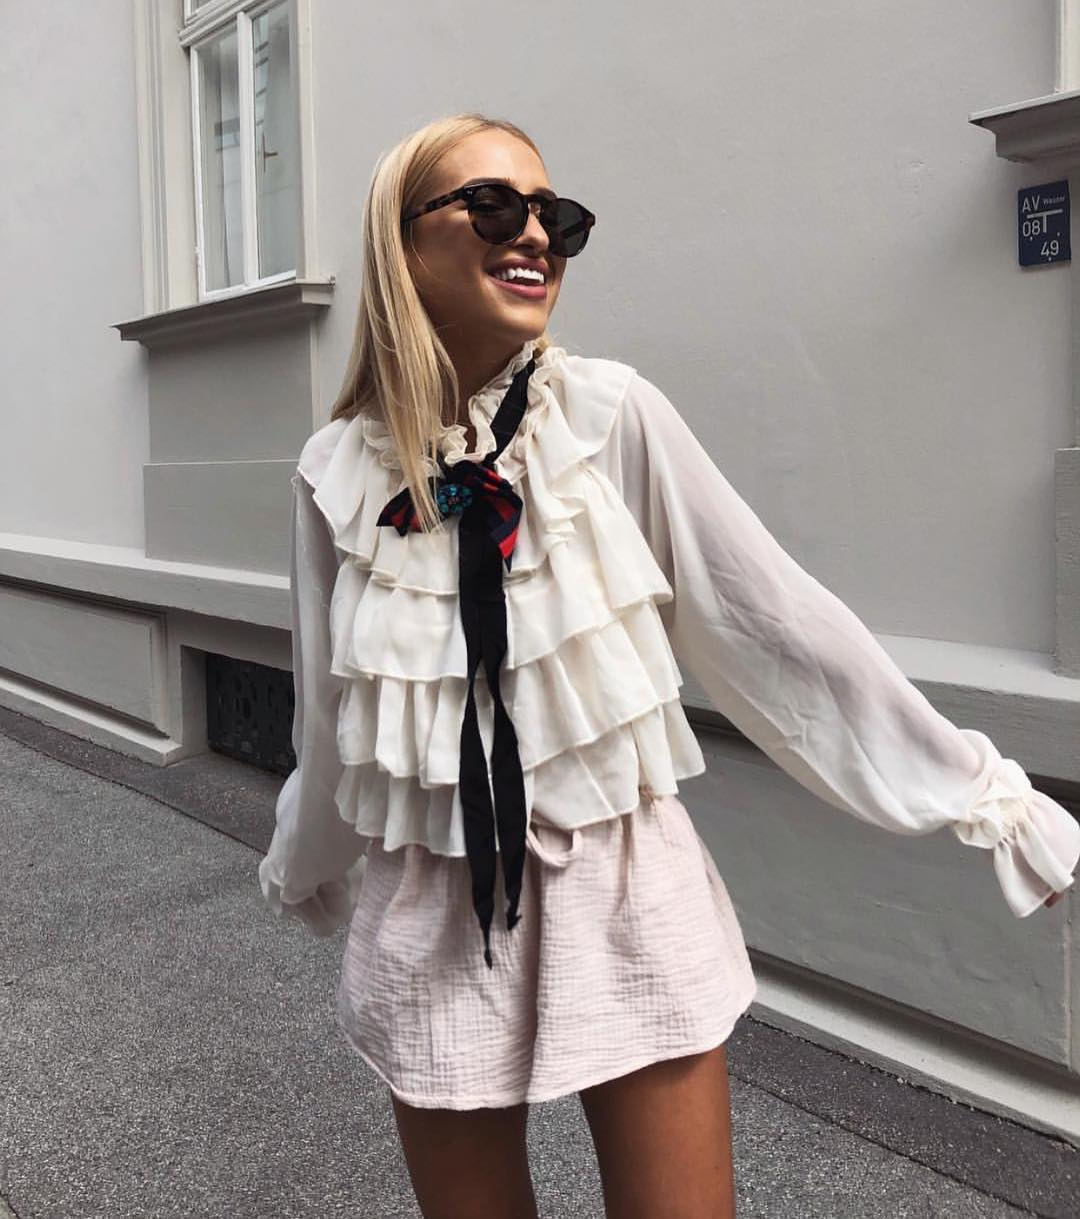 How To Wear Layered Ruffle White Blouse With Black Necktie 2020